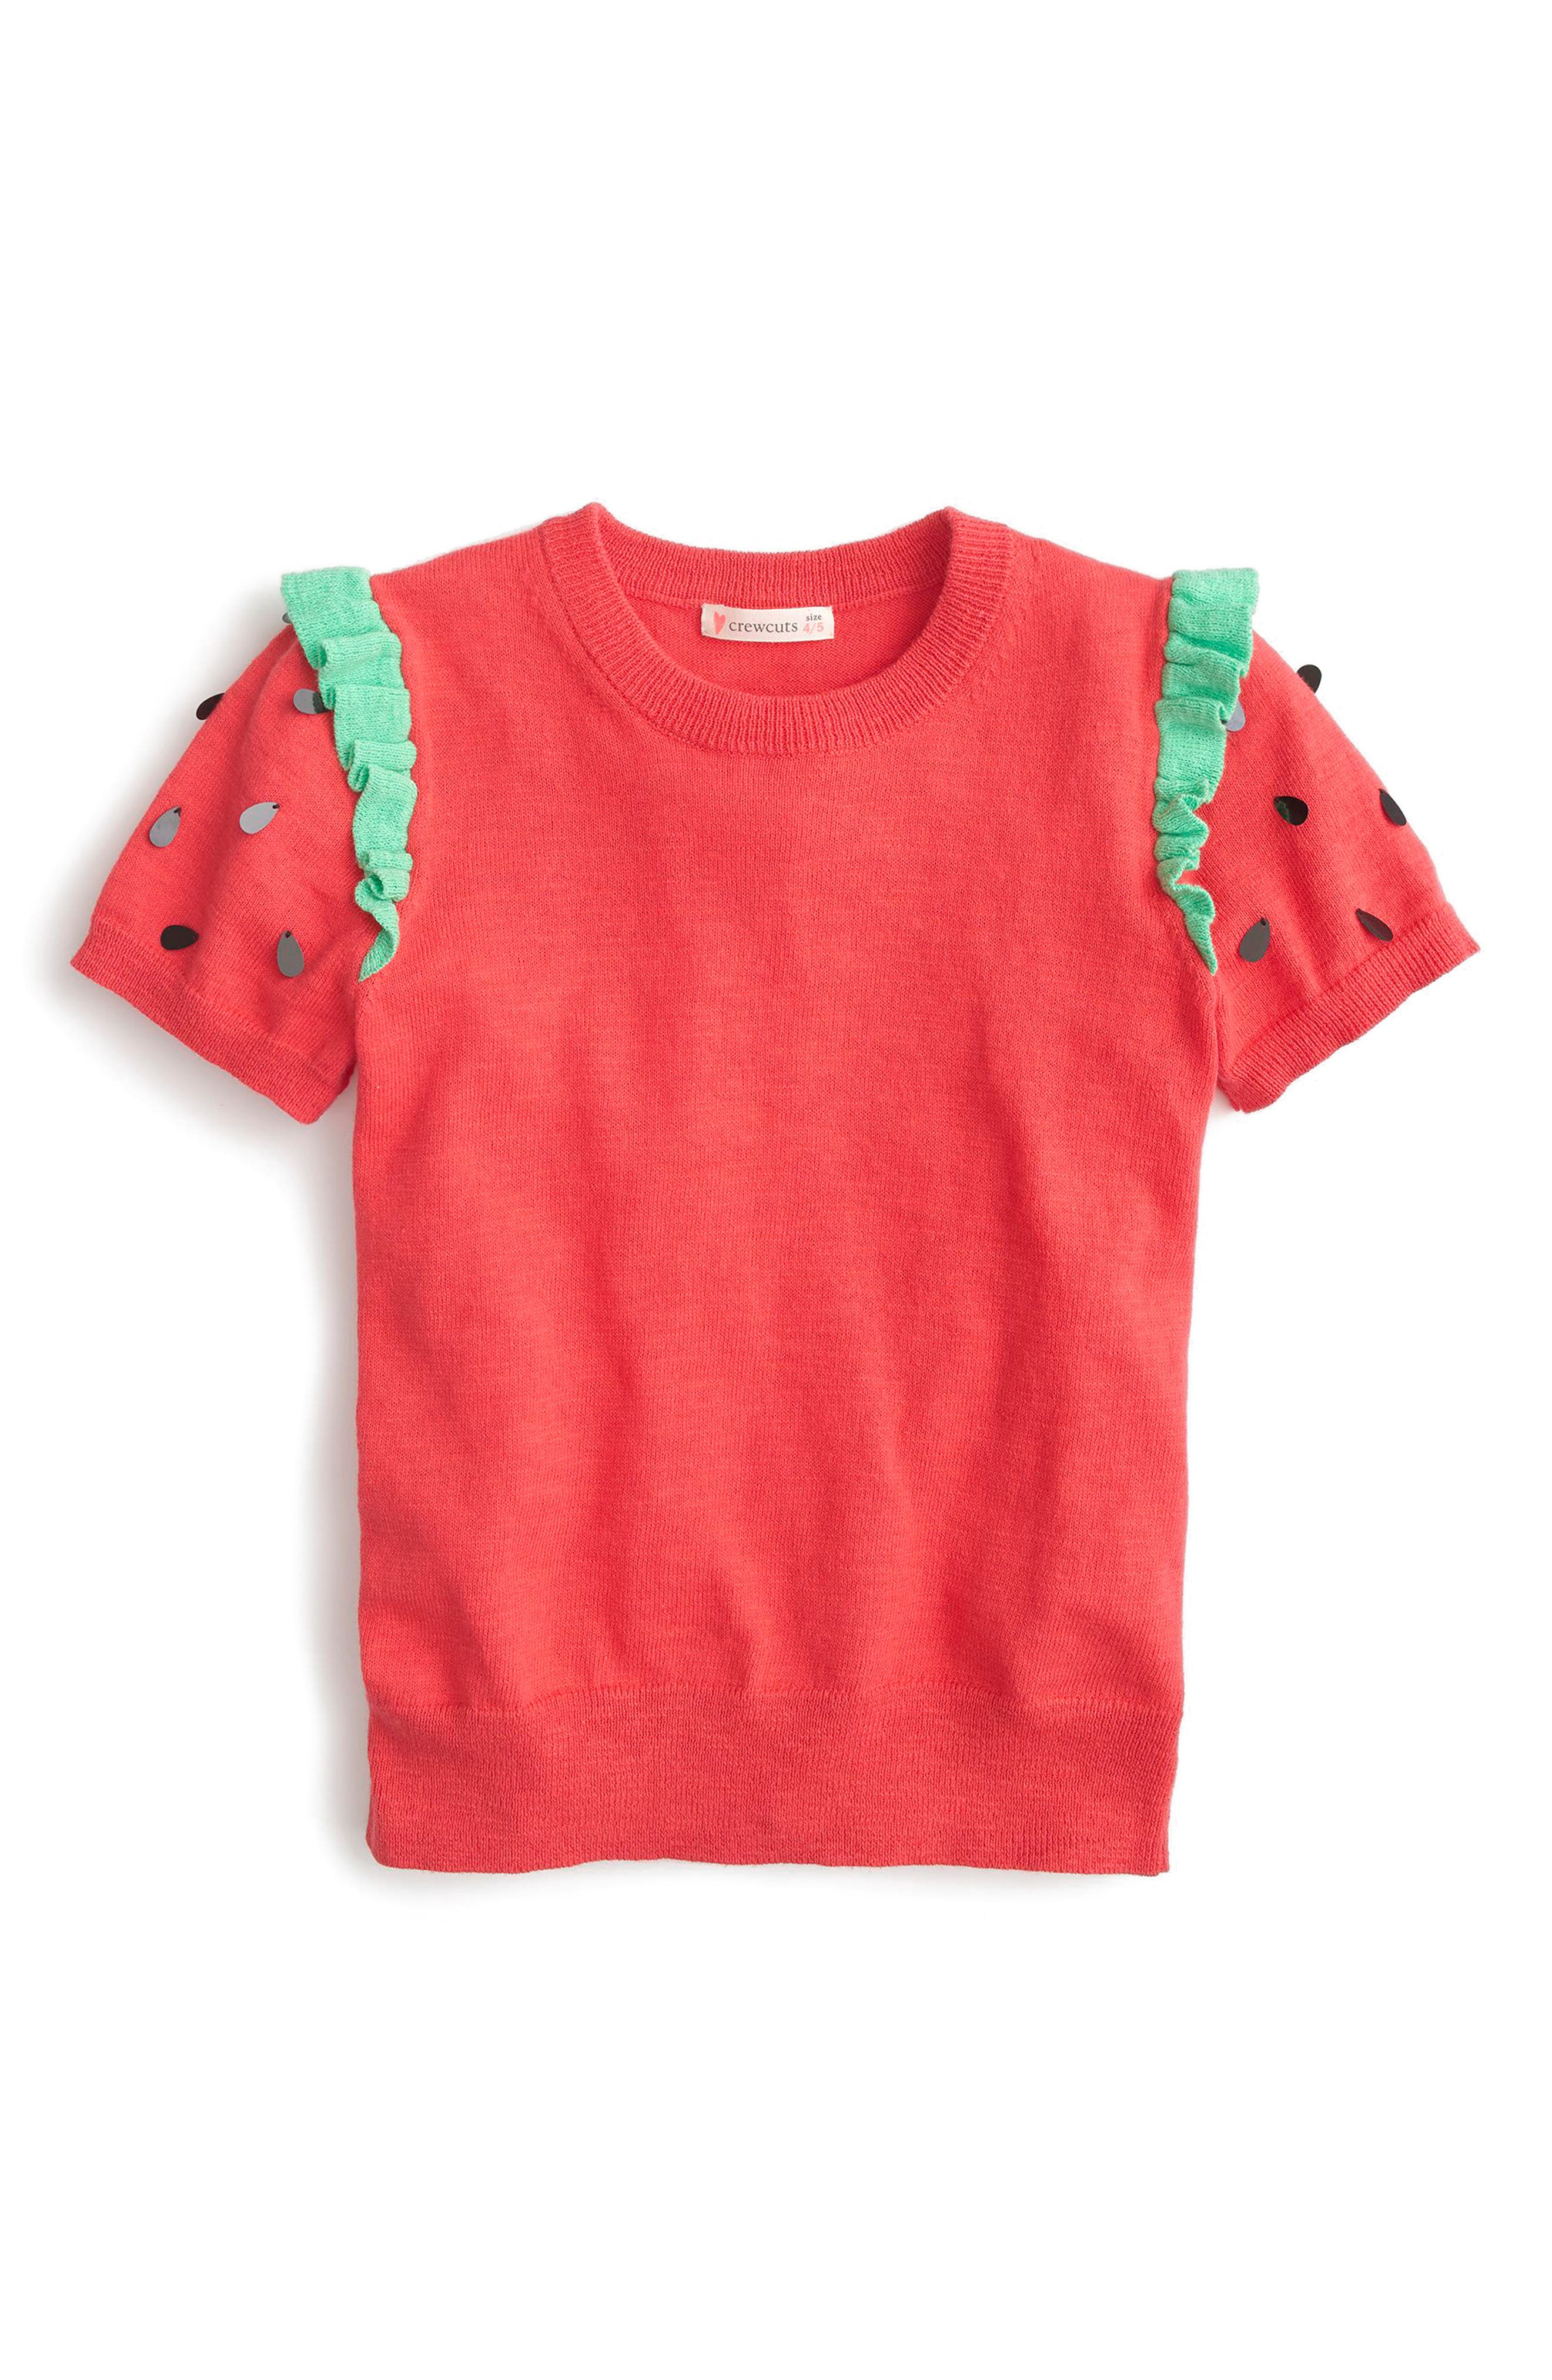 J.Crew Strawberry Goodness Short Sleeve Sweater,                             Main thumbnail 1, color,                             600